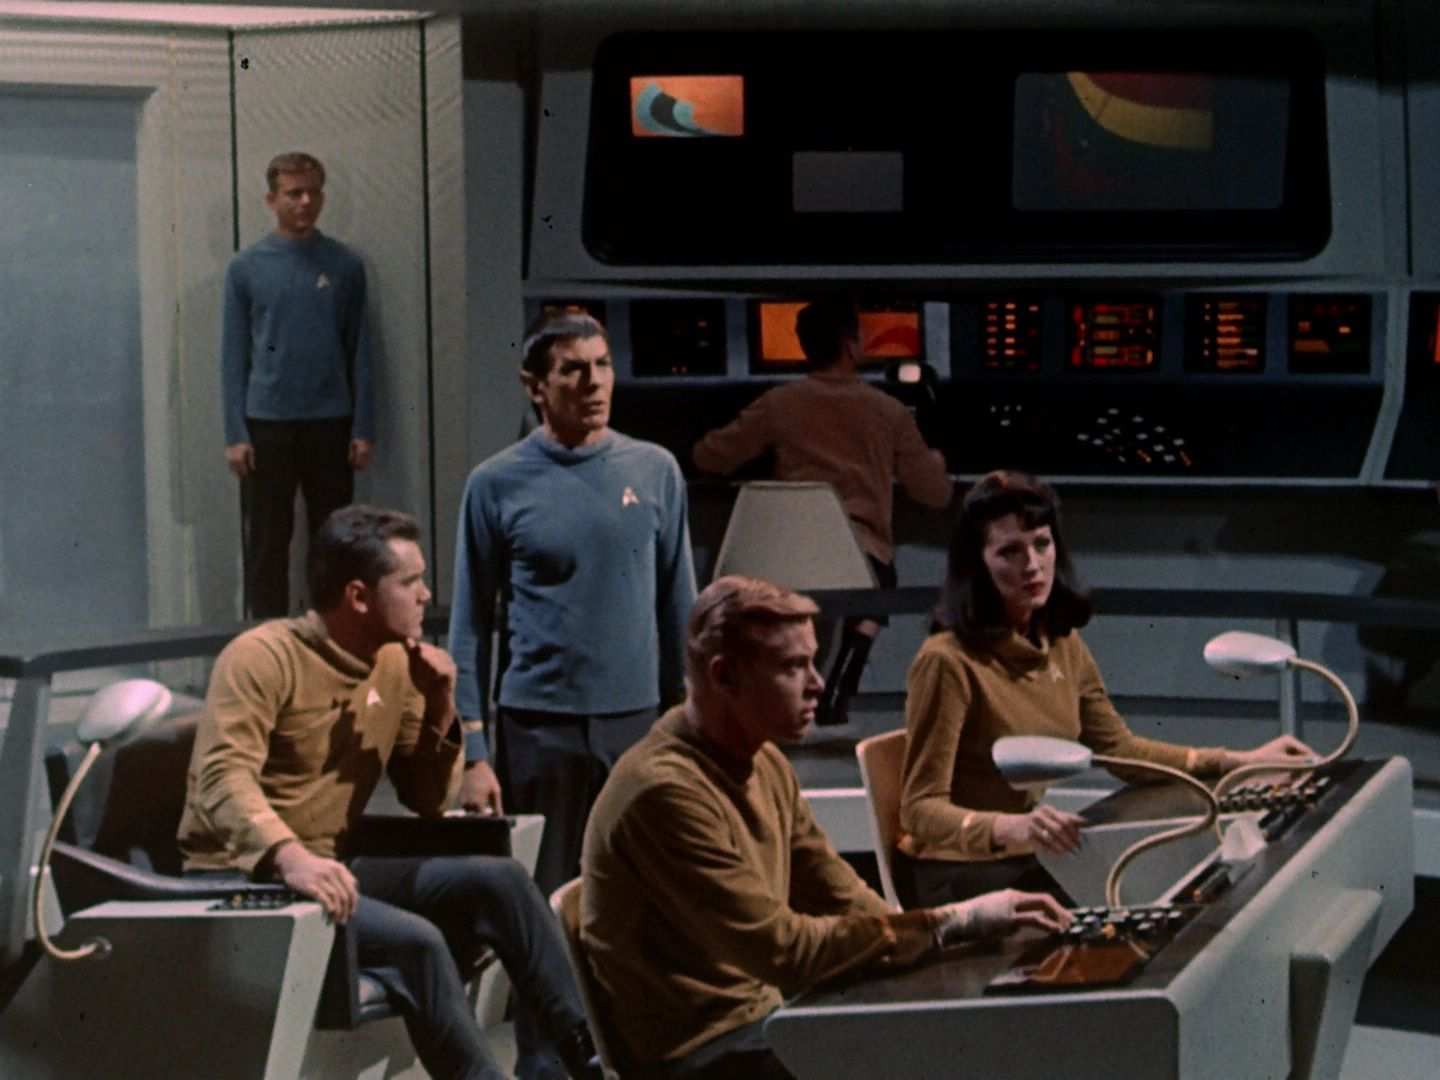 Star Trek: the Original Series. Season 1. Pilot/Episode 1: The Cage. USS Enterprise. the Bridge